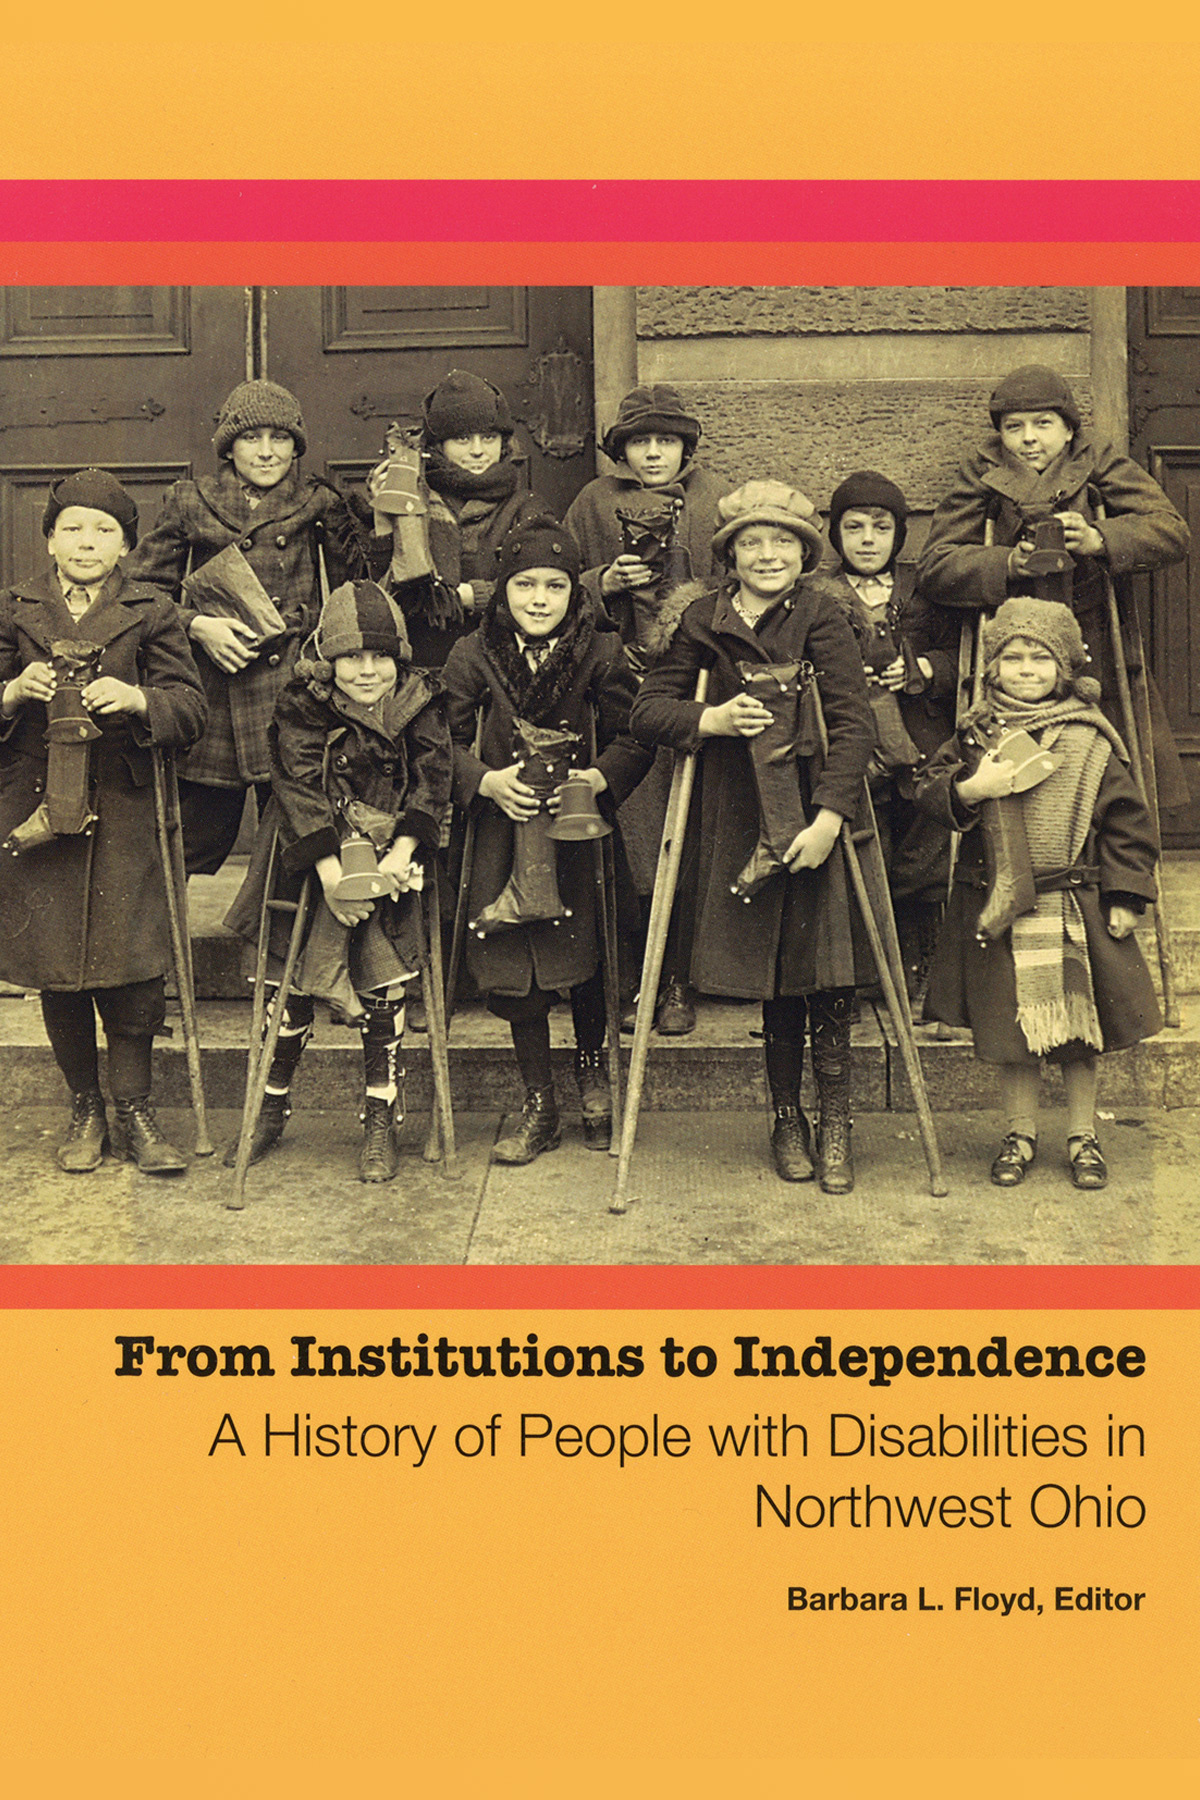 From Institutions to Independence